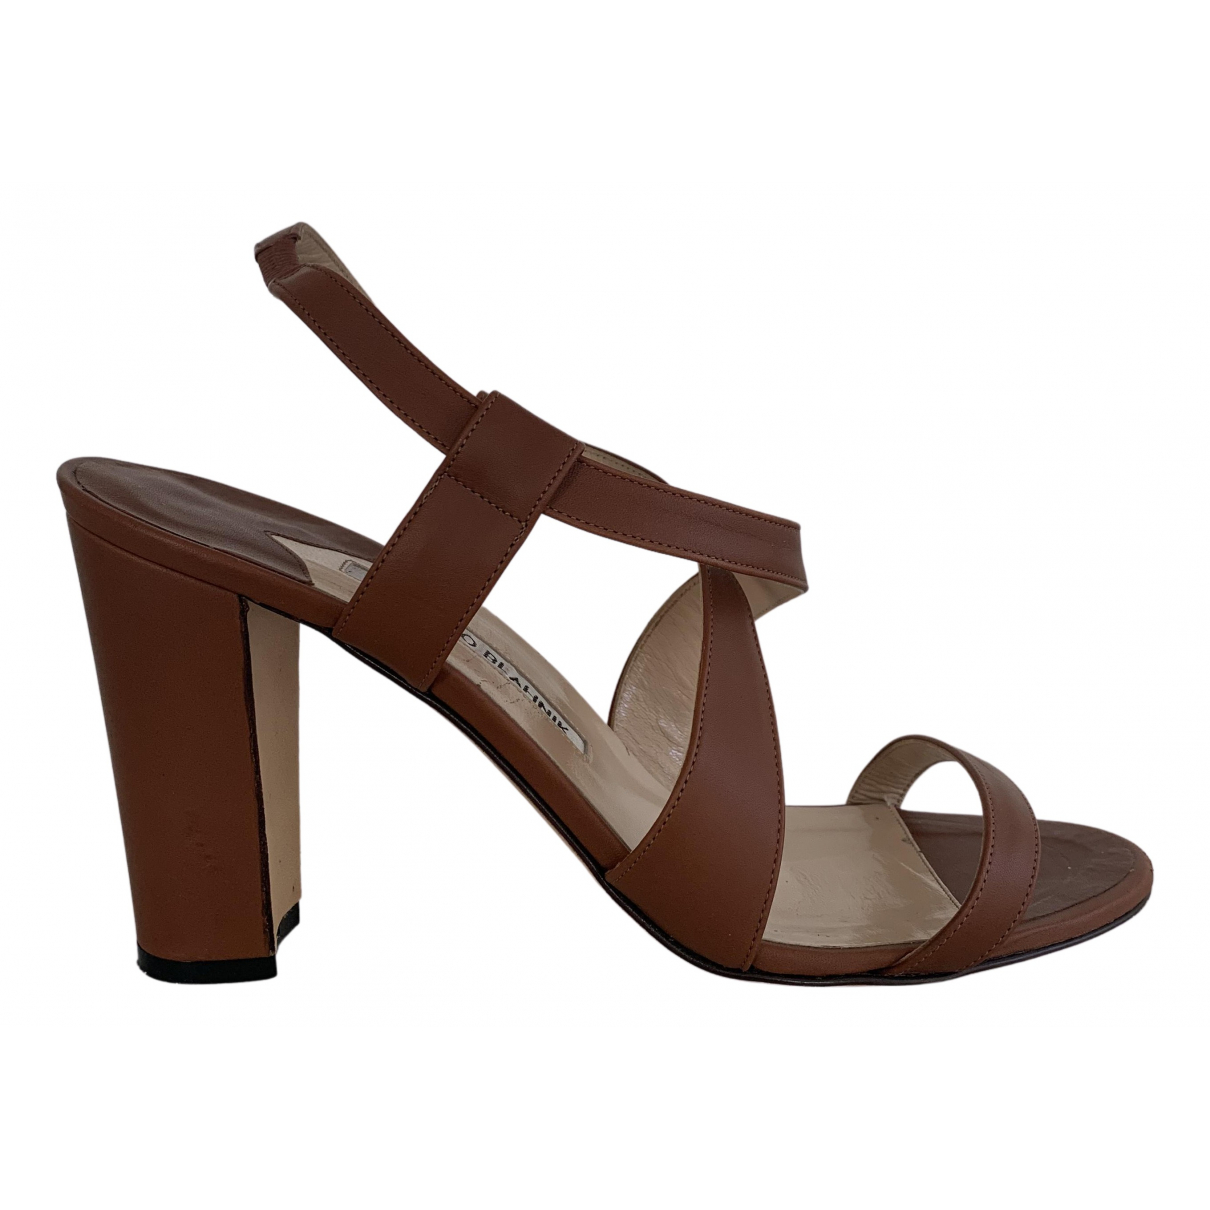 Manolo Blahnik N Brown Leather Sandals for Women 39 EU